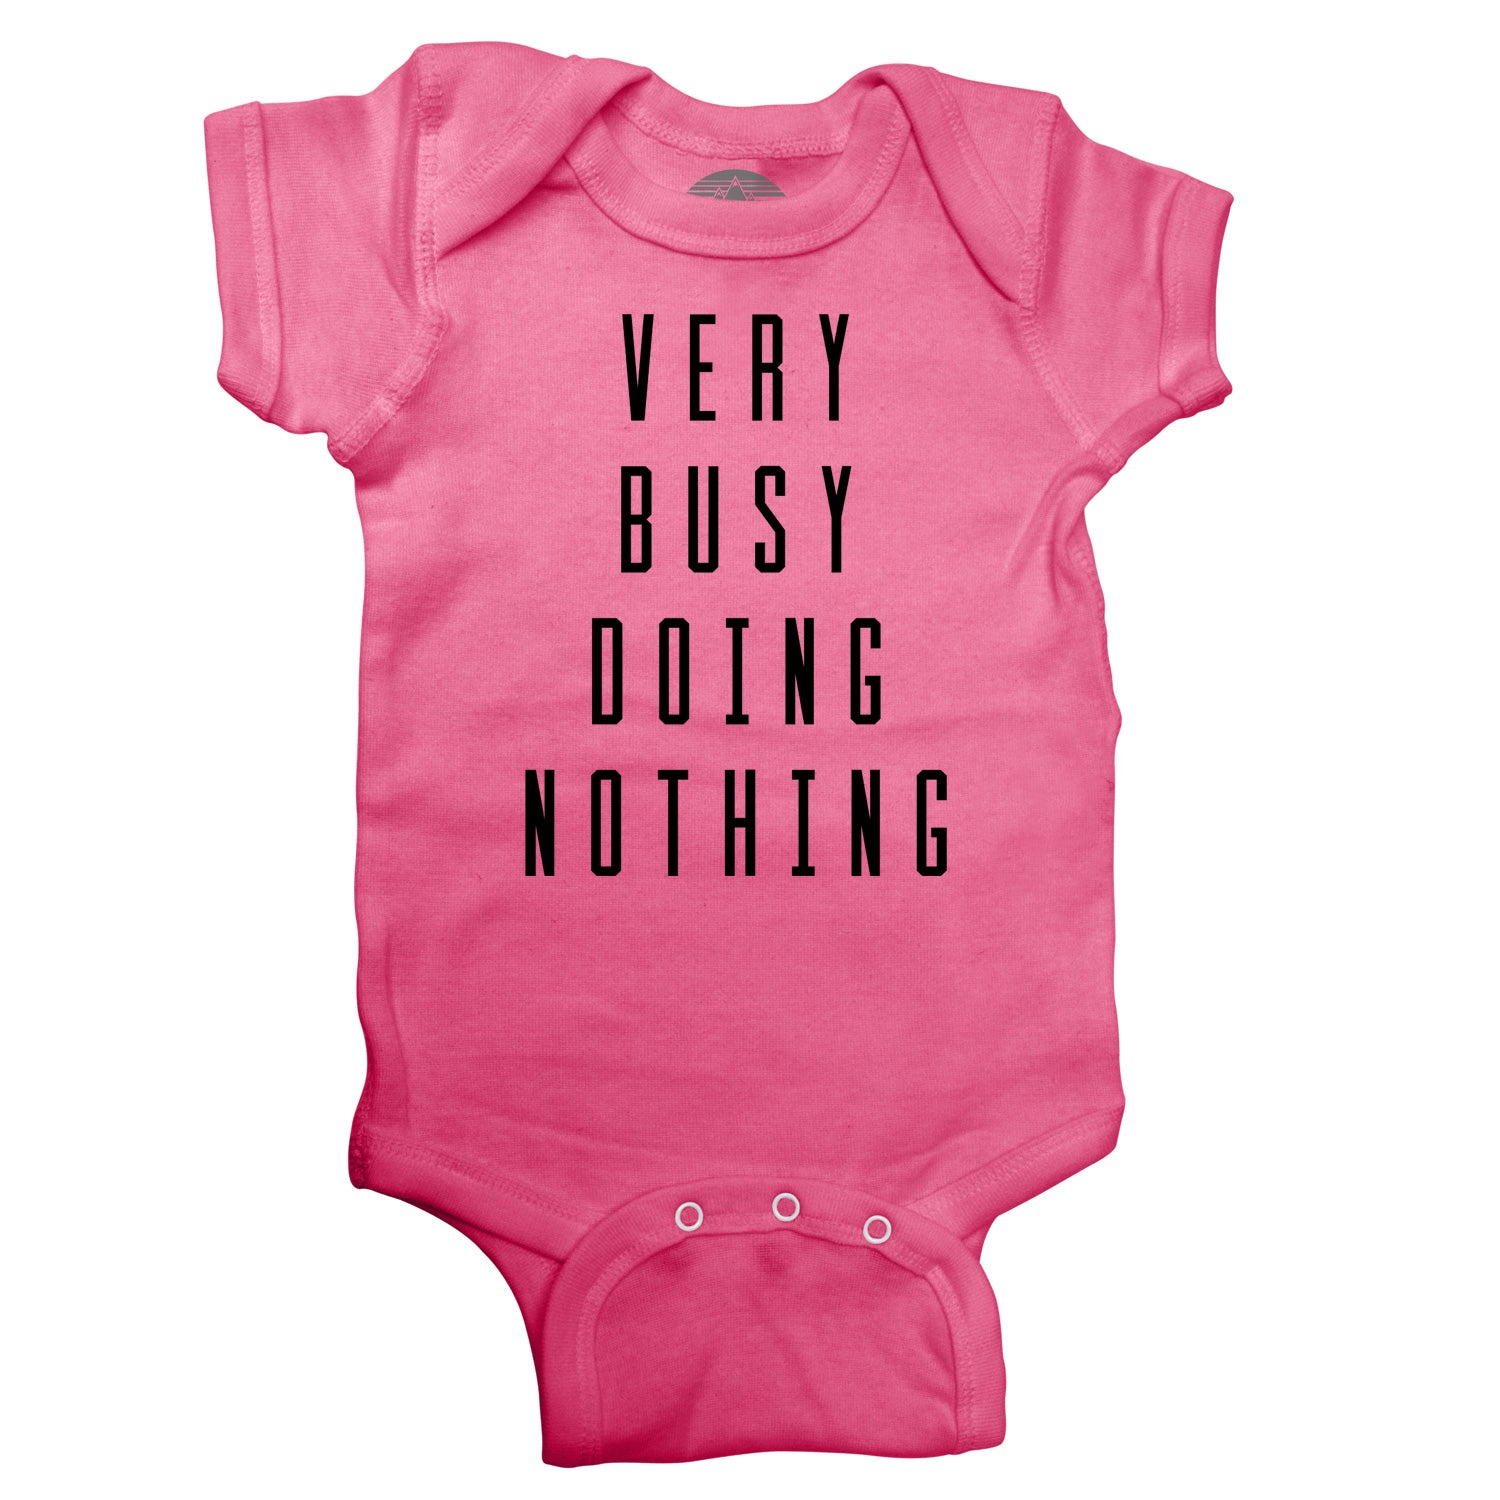 Very Busy Doing Nothing Infant Bodysuit - Unisex Fit ...